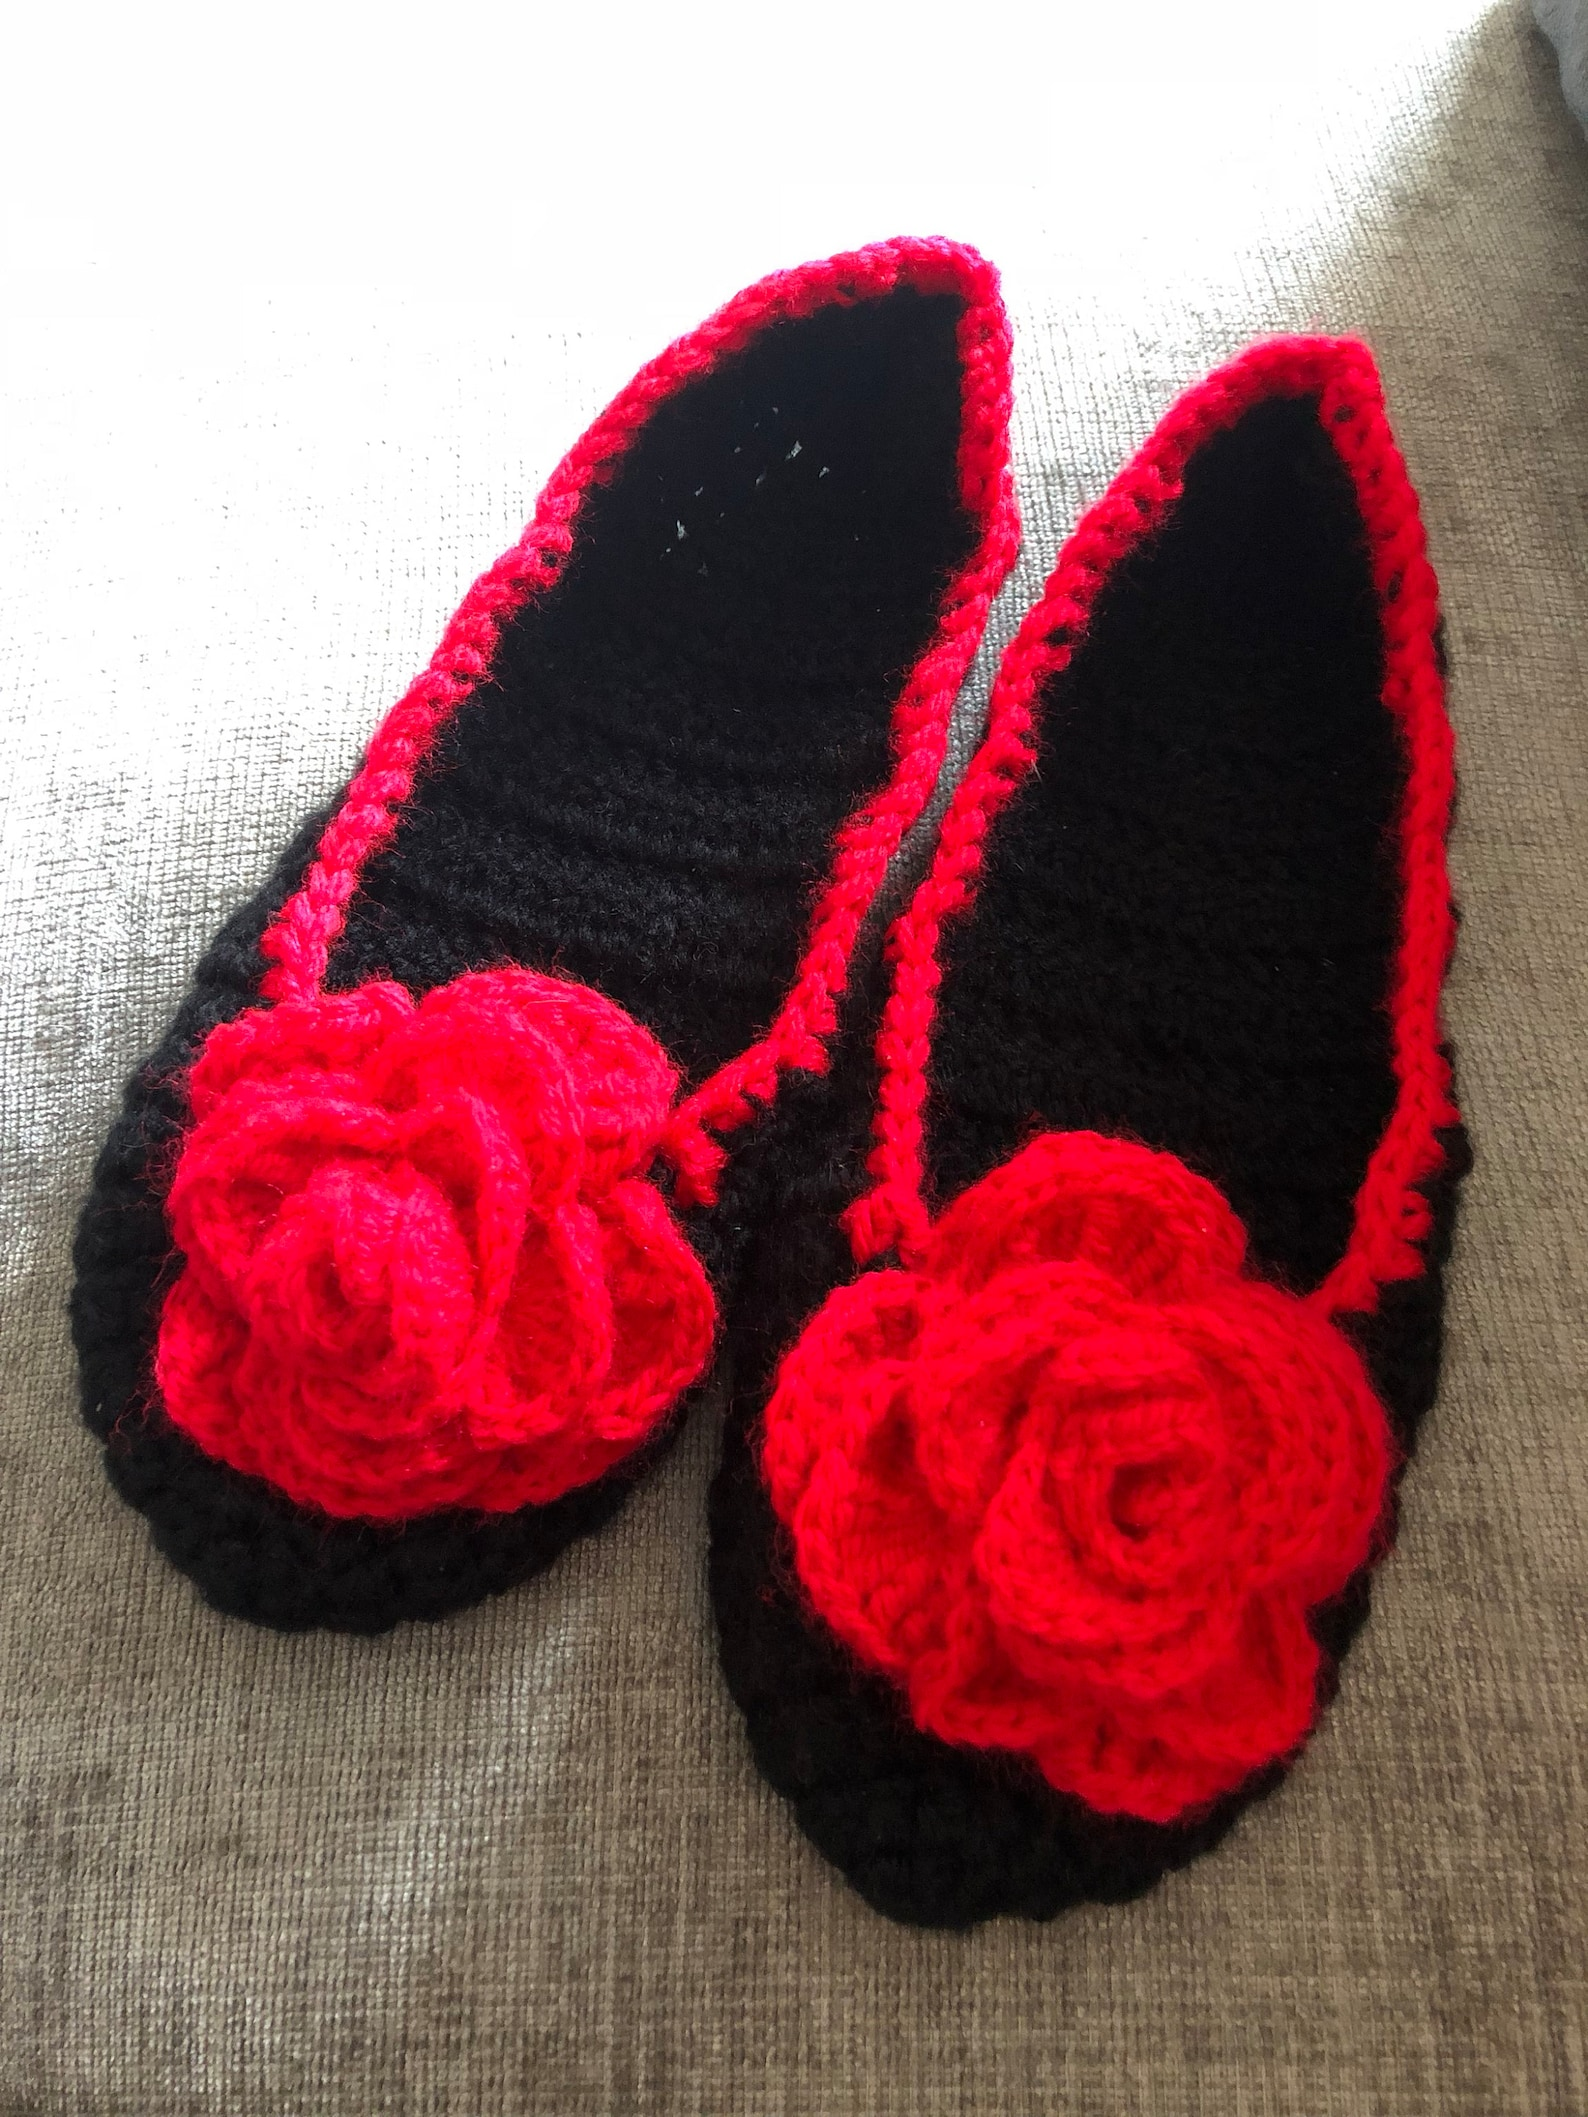 daisy rose ballet house slippers customisable